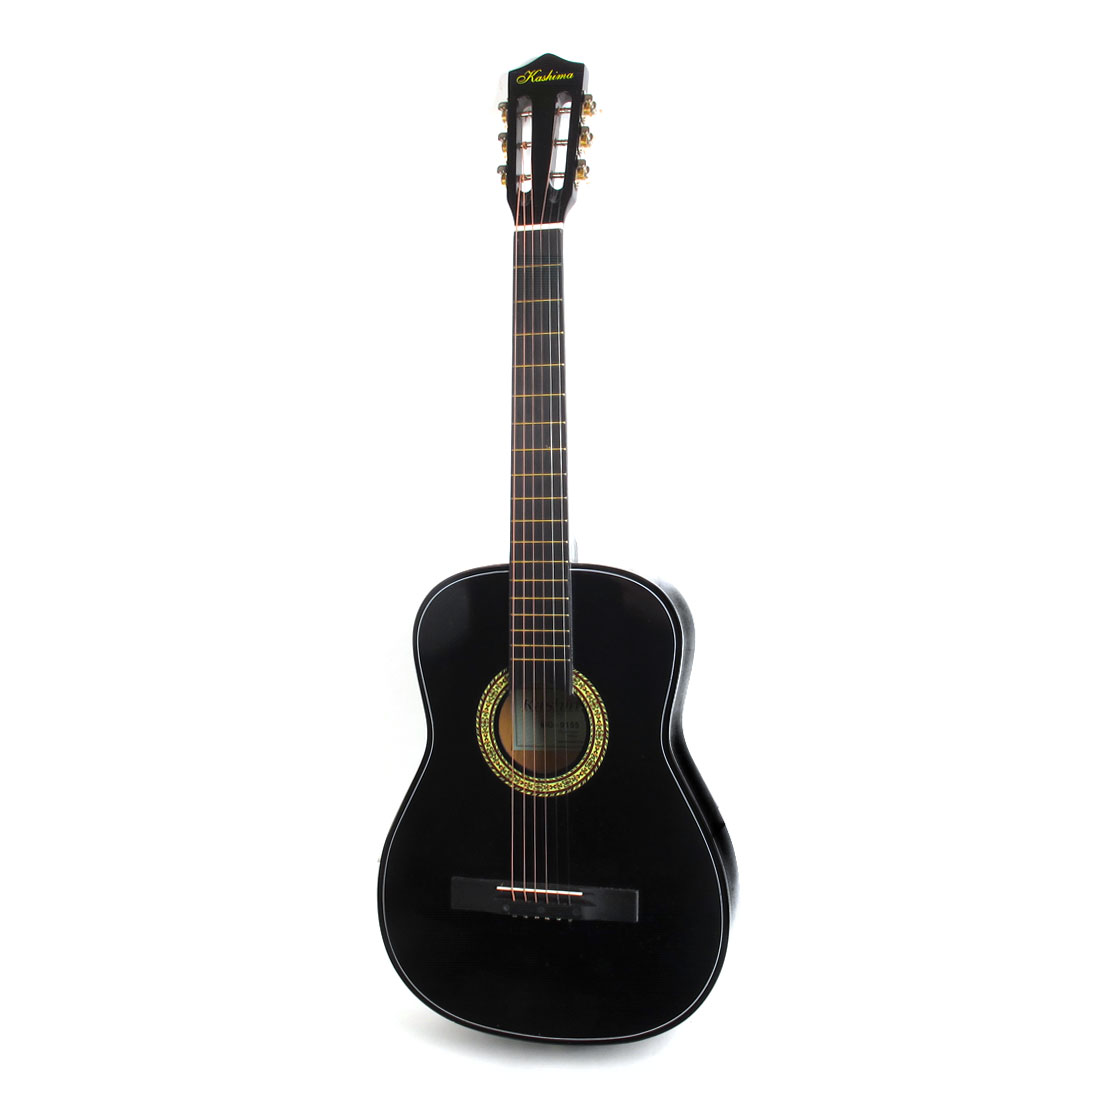 Black Wooden Body 6 Strings 96.5cm Length Musical Acoustic Guitar